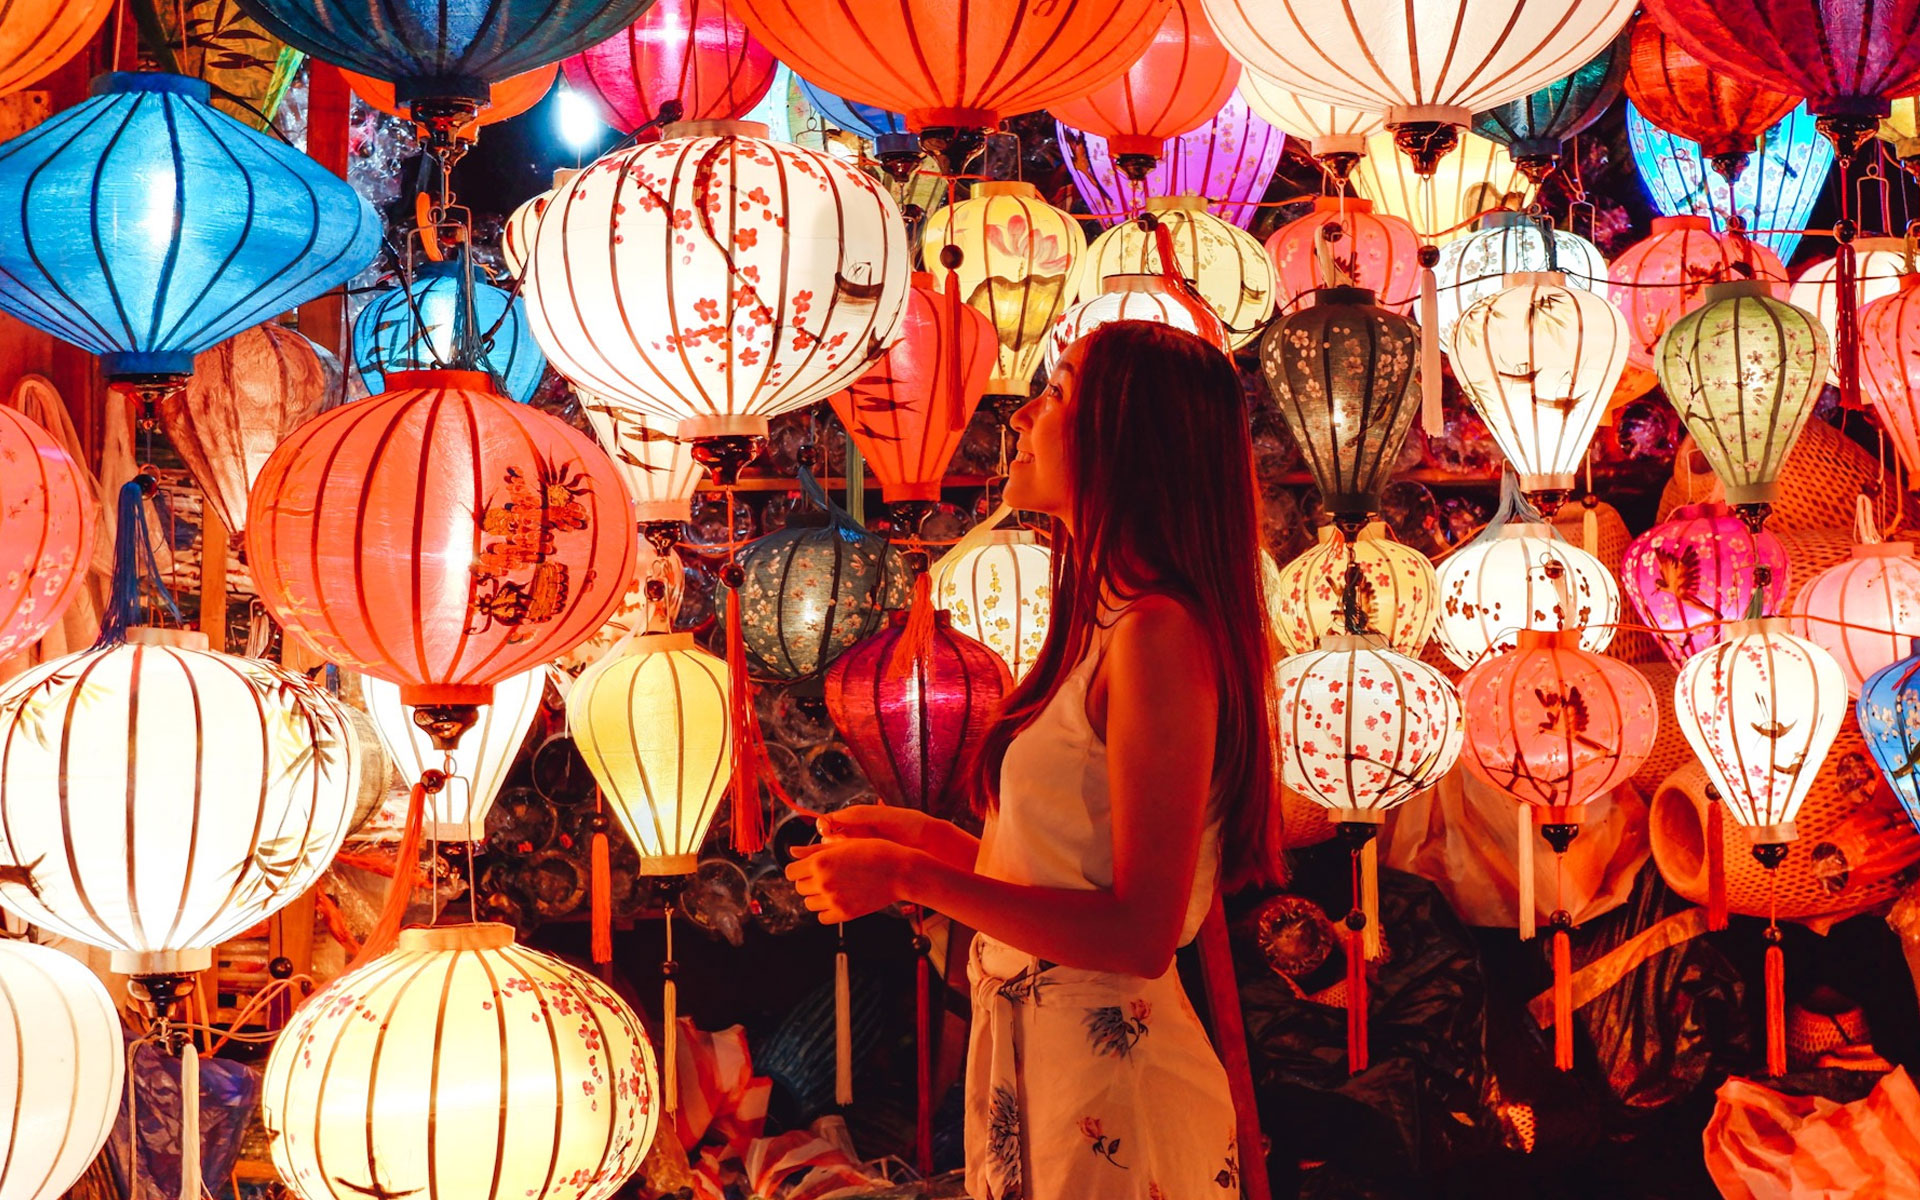 Impressive lanterns - the unique and attractive thing to remind you about Hoi An town.